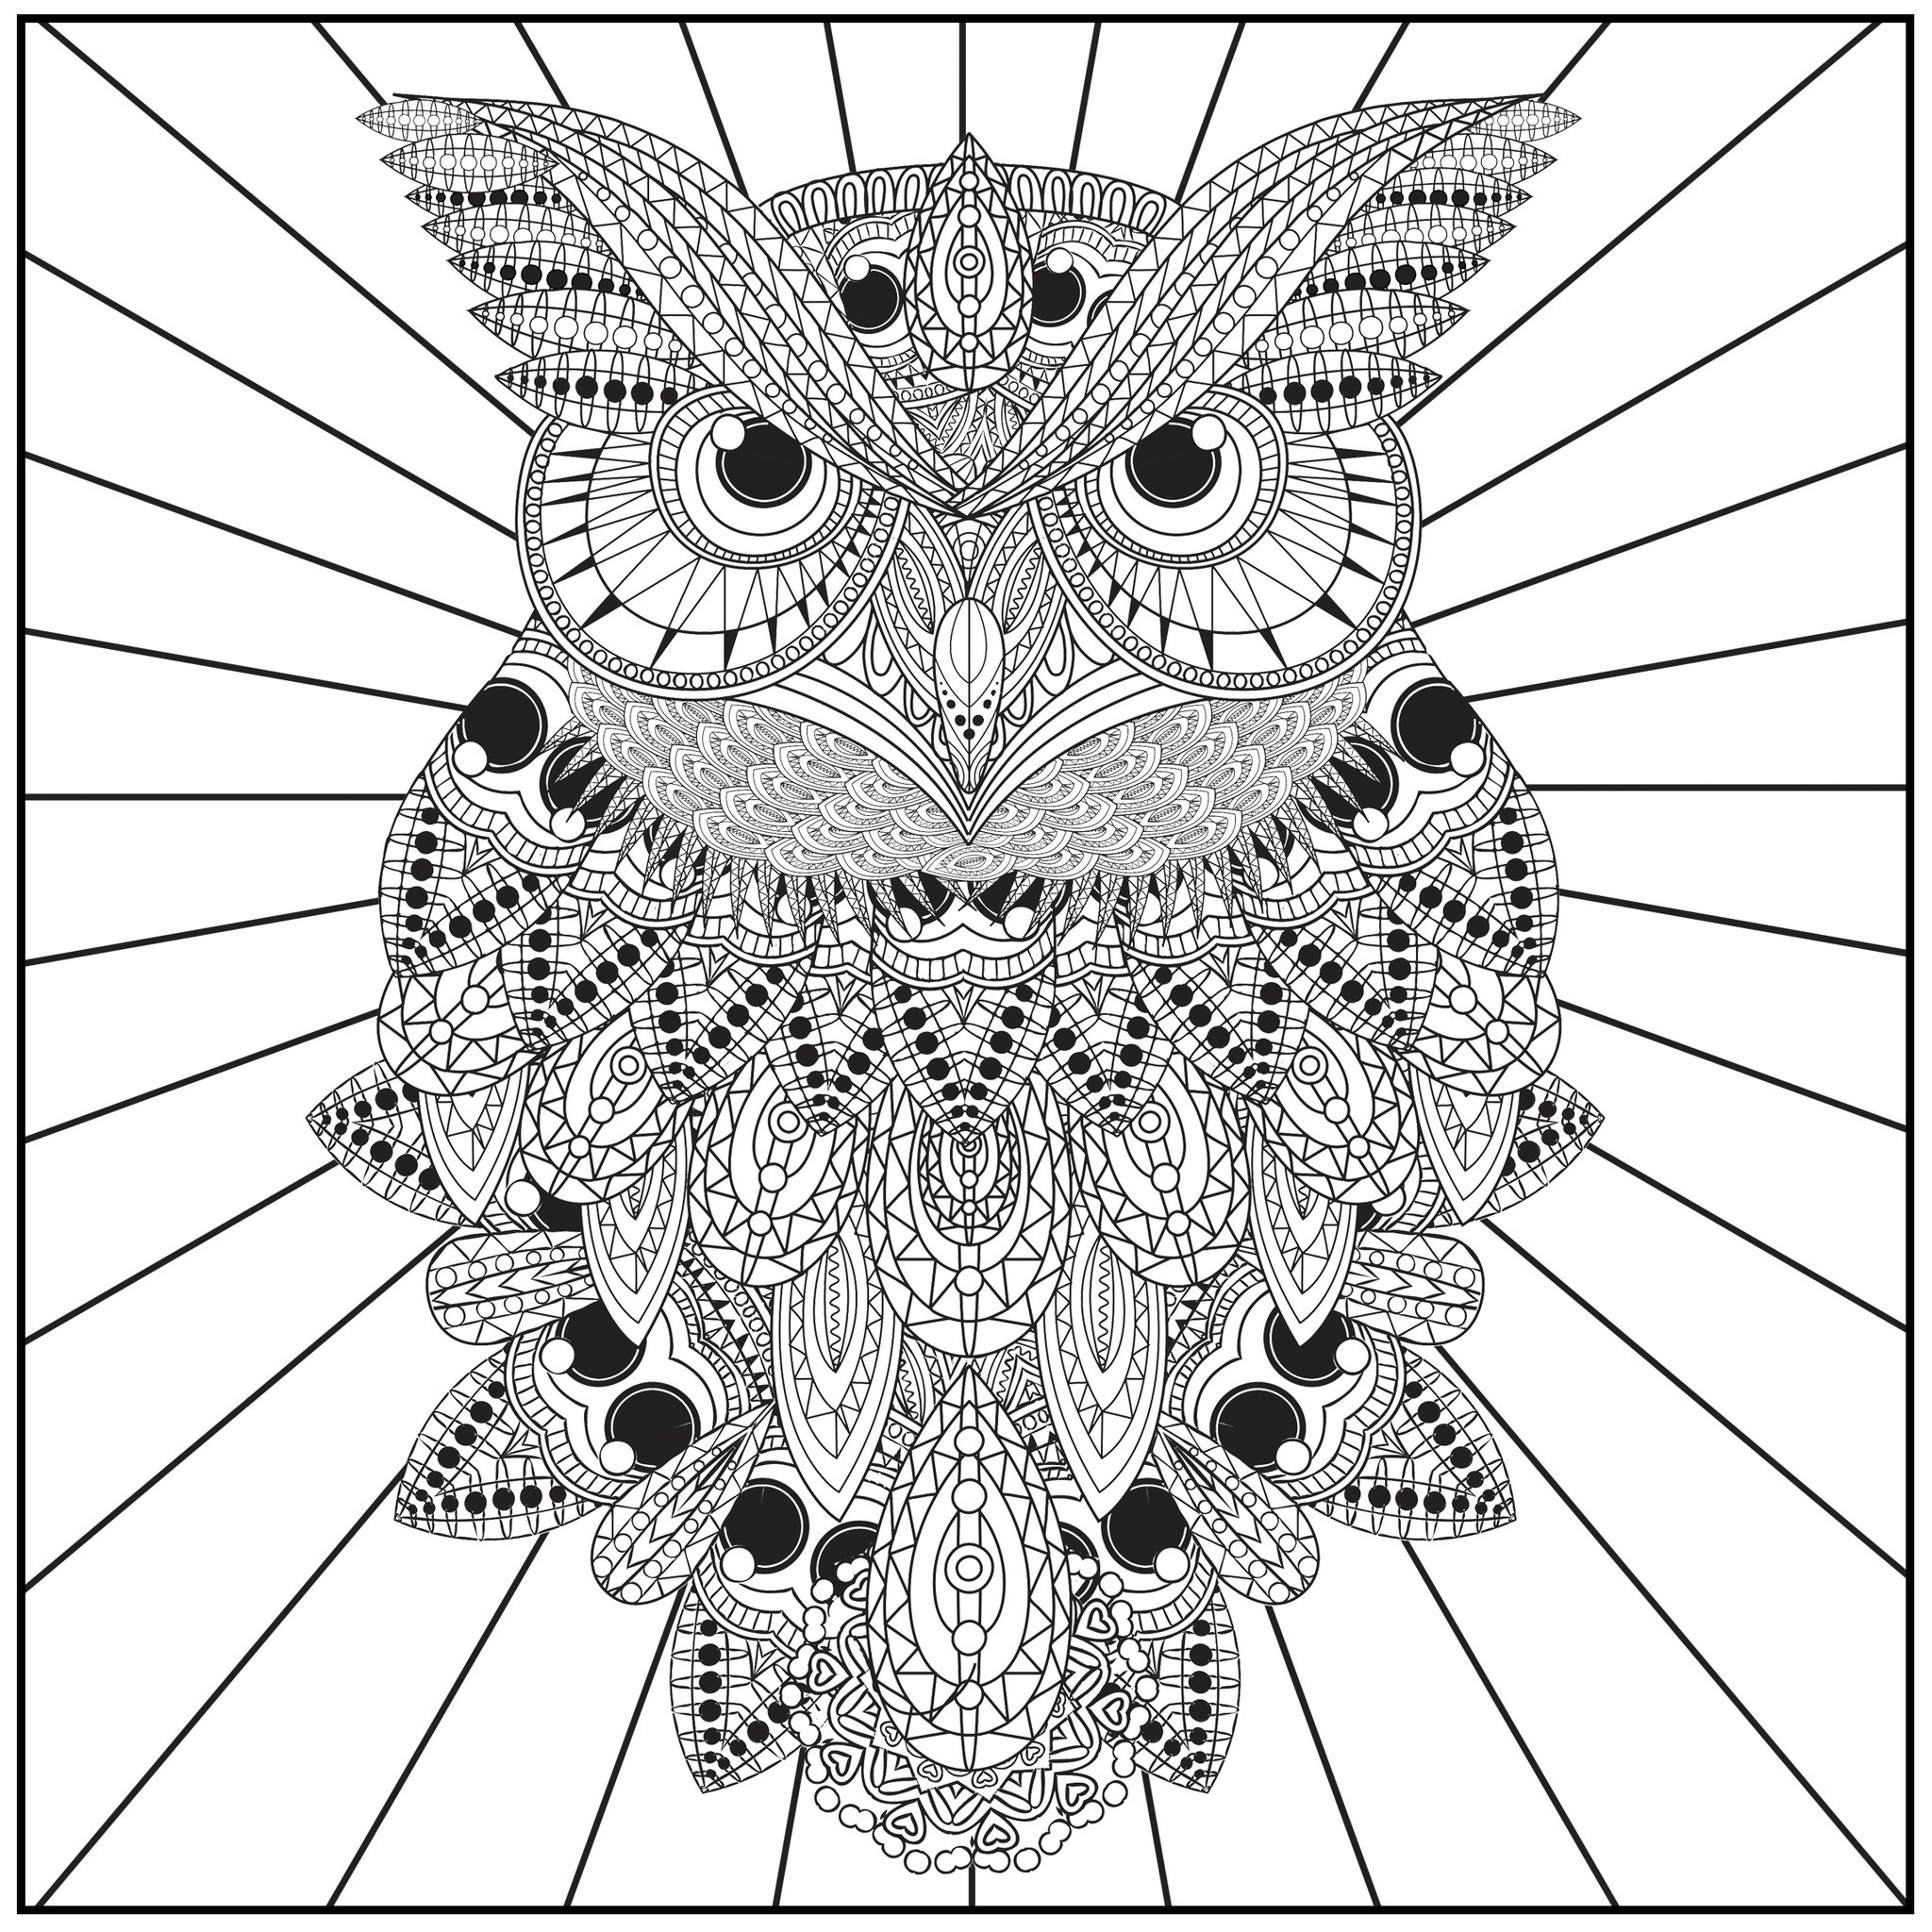 Relaxing Coloring Pages Relaxing Coloring Pages At Getdrawings Free For Personal Use